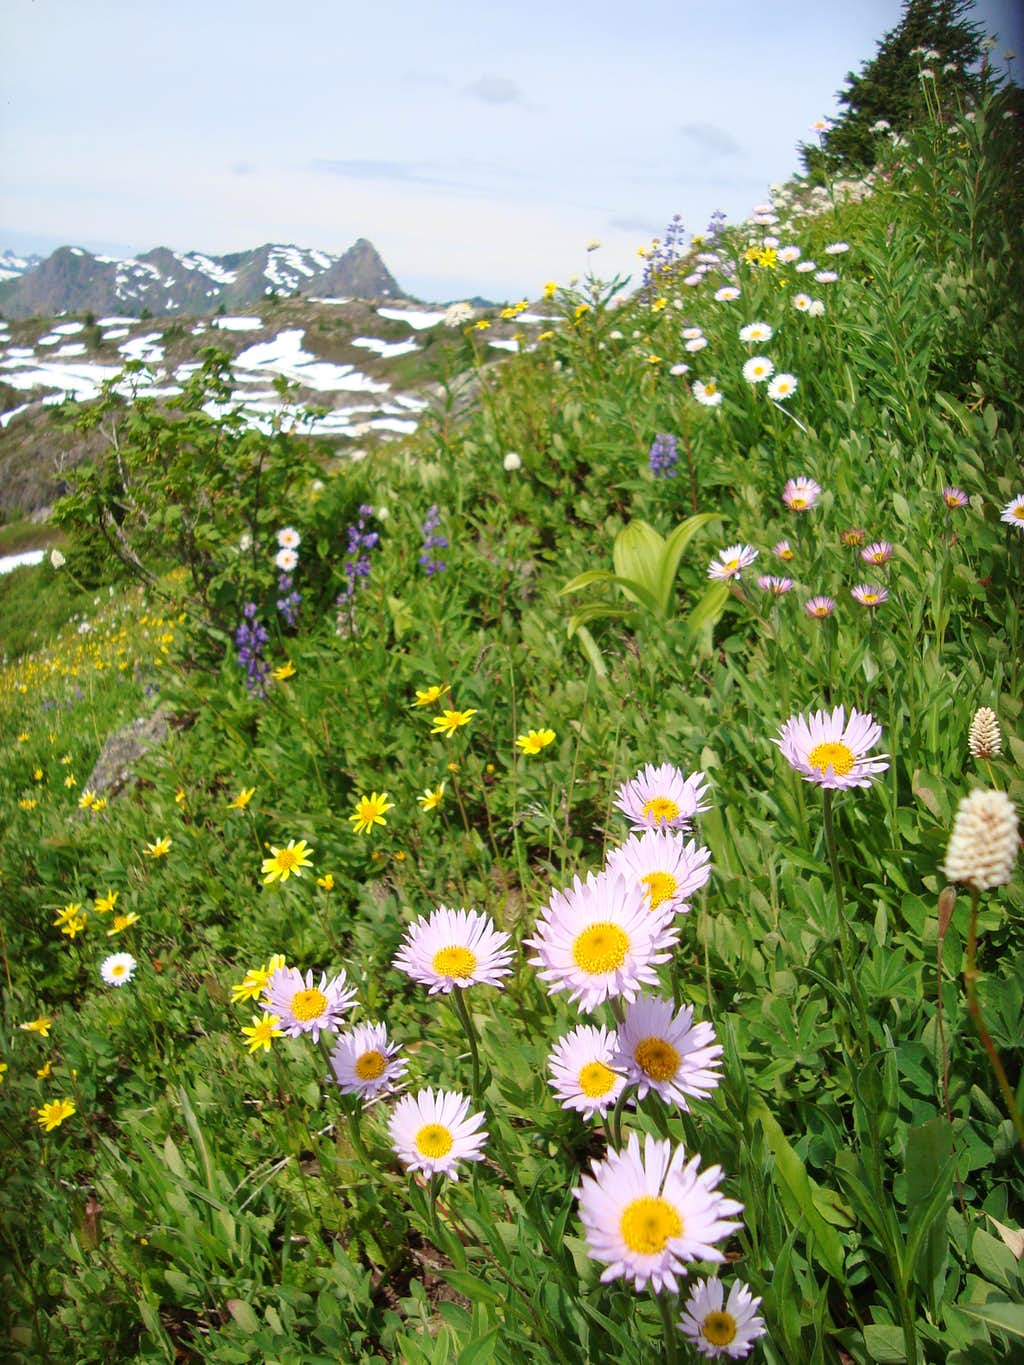 Pretty pink daisy like flowers photos diagrams topos summitpost pretty pink daisy like flowers izmirmasajfo Images